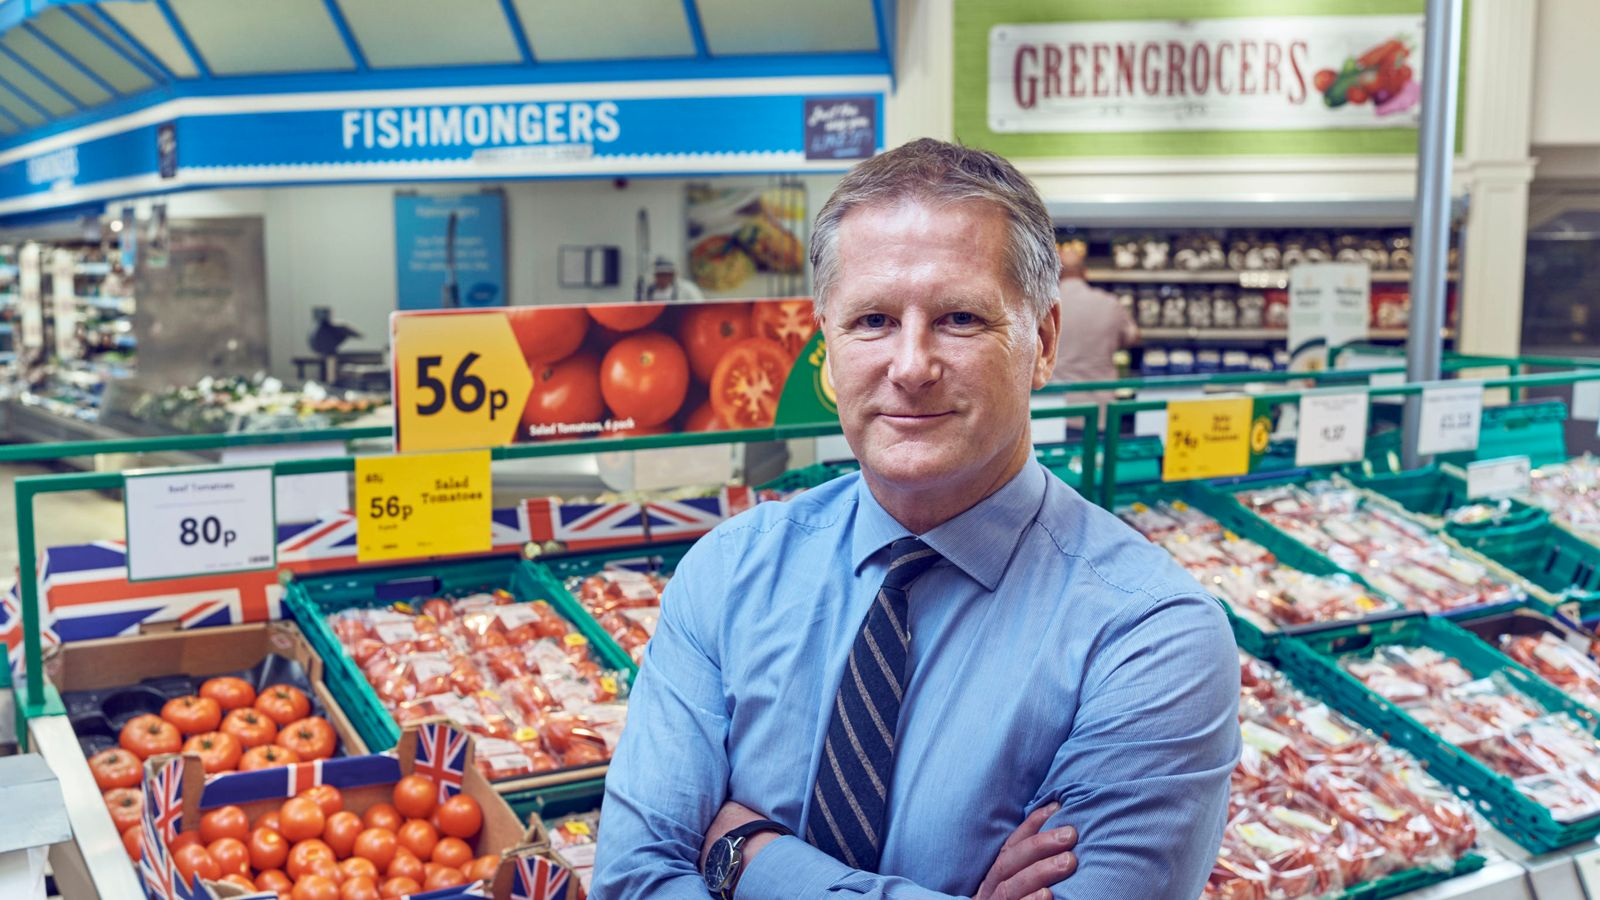 Morrisons chief executive David Potts